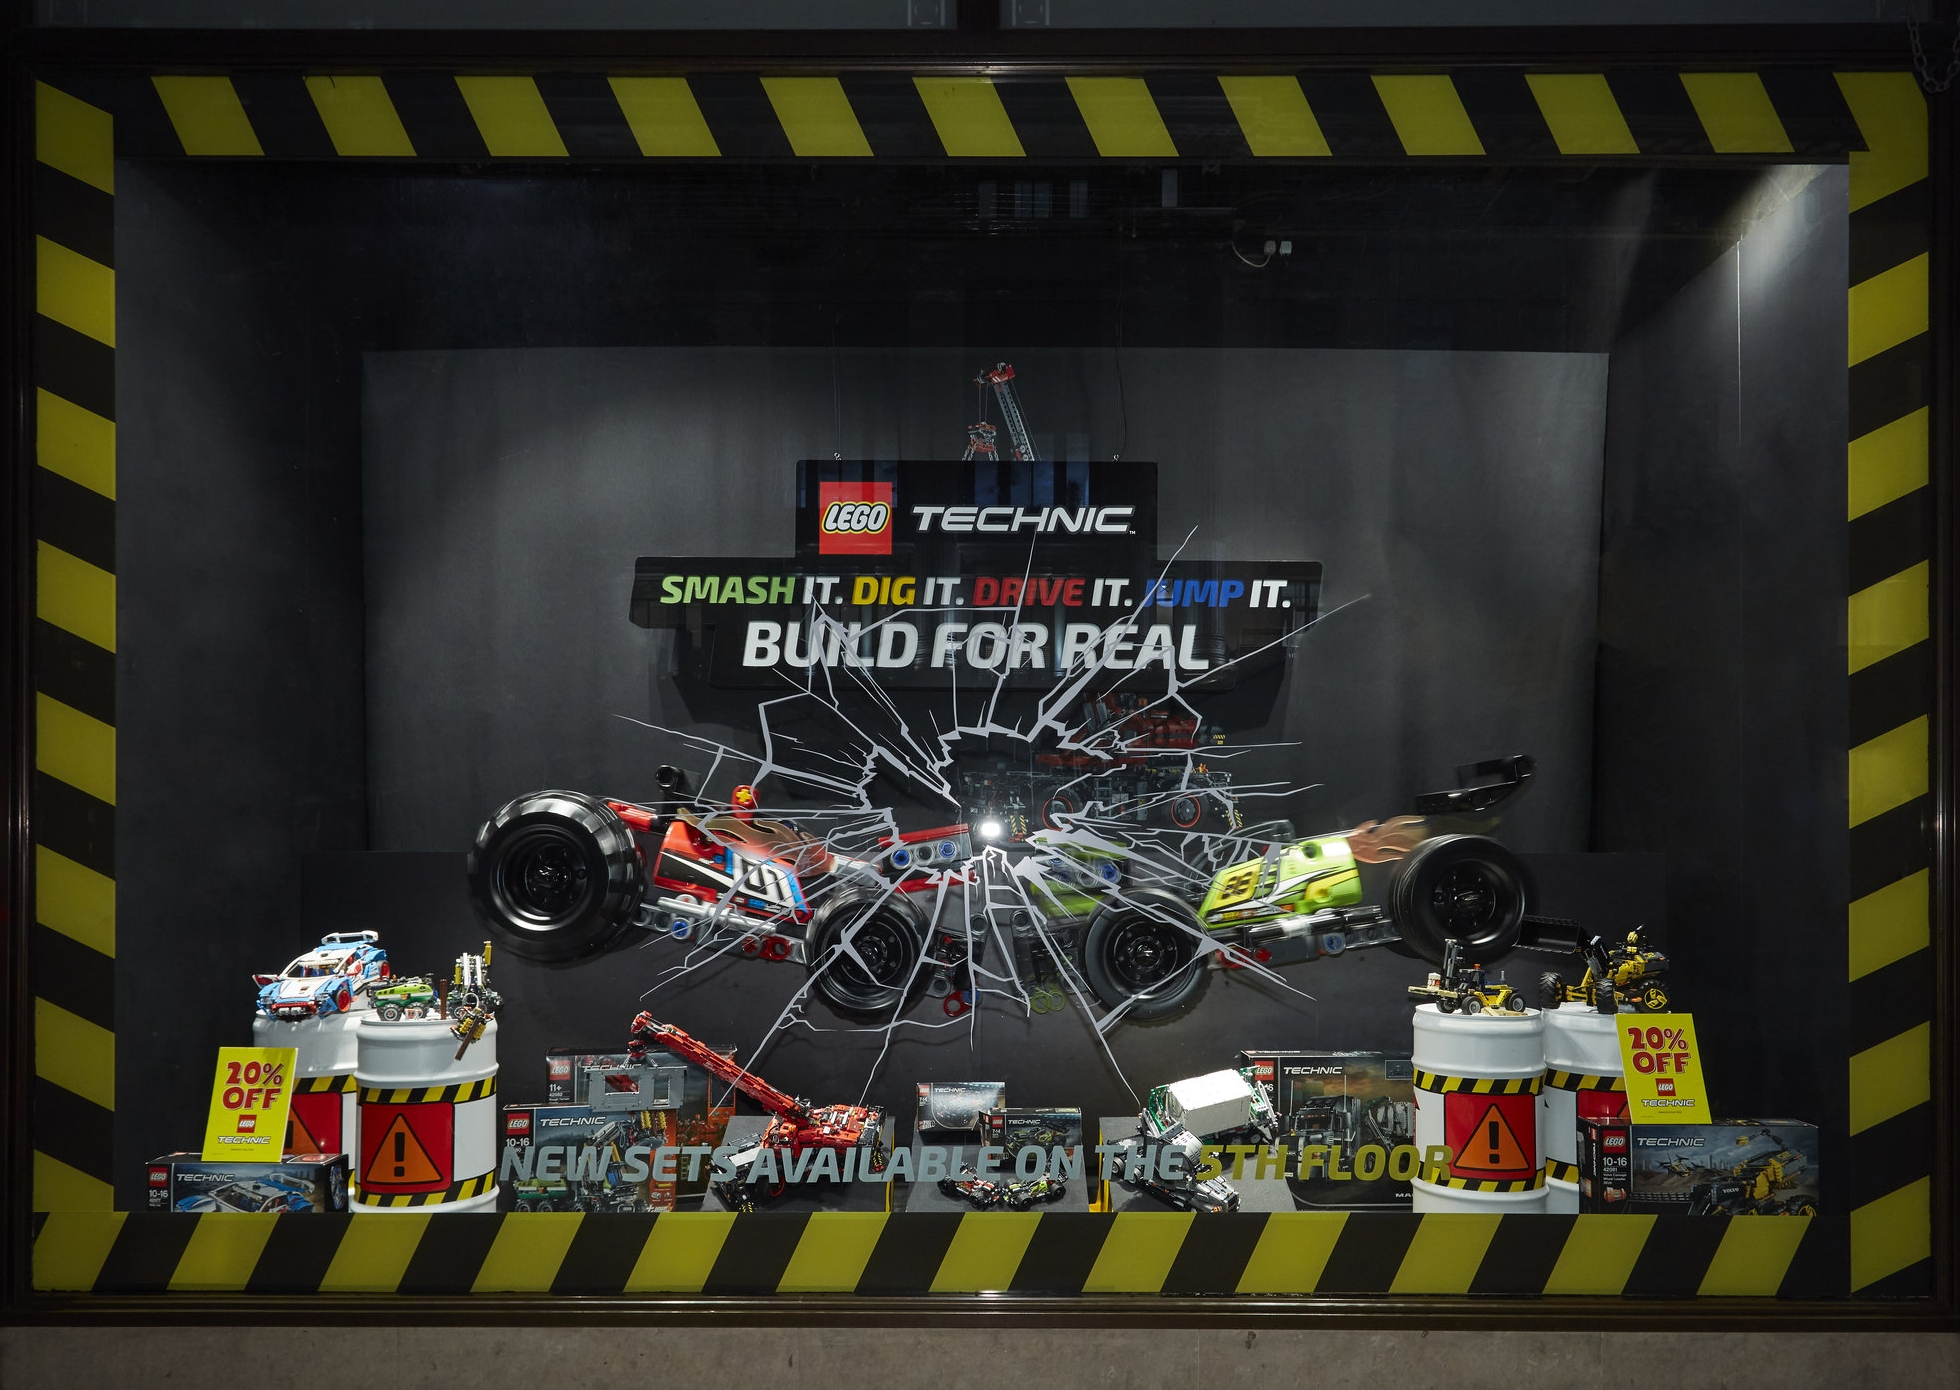 LEGO TECHNIC - HAMLEYS, LONDON    Sept 2018